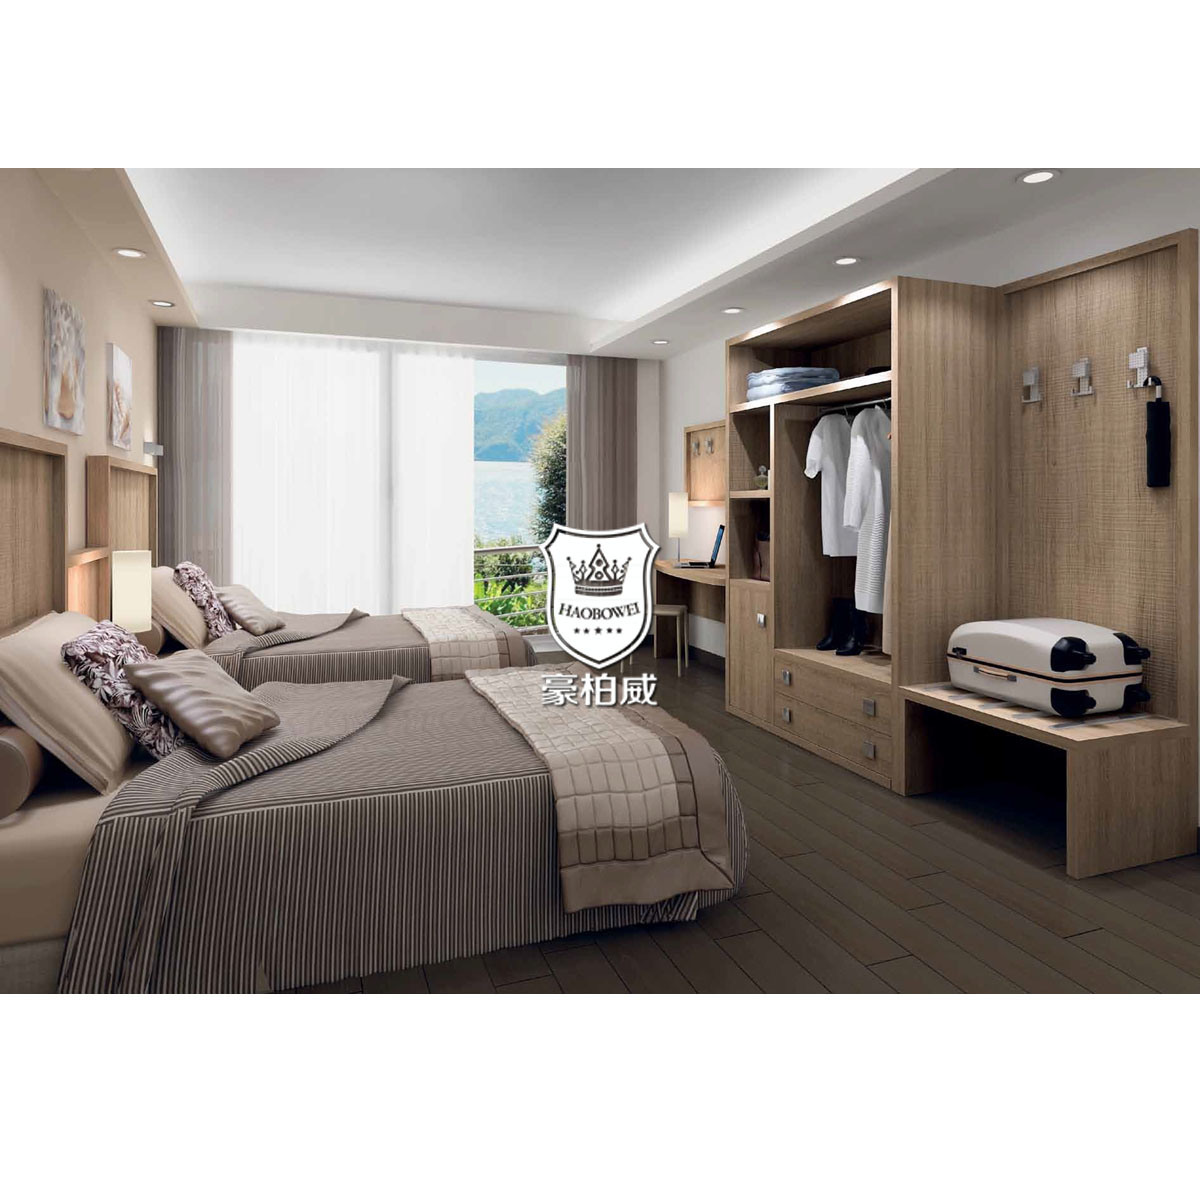 Furniture Toronto Com China Supply Canada Toronto Hotel Furniture For Sale In Wood Color